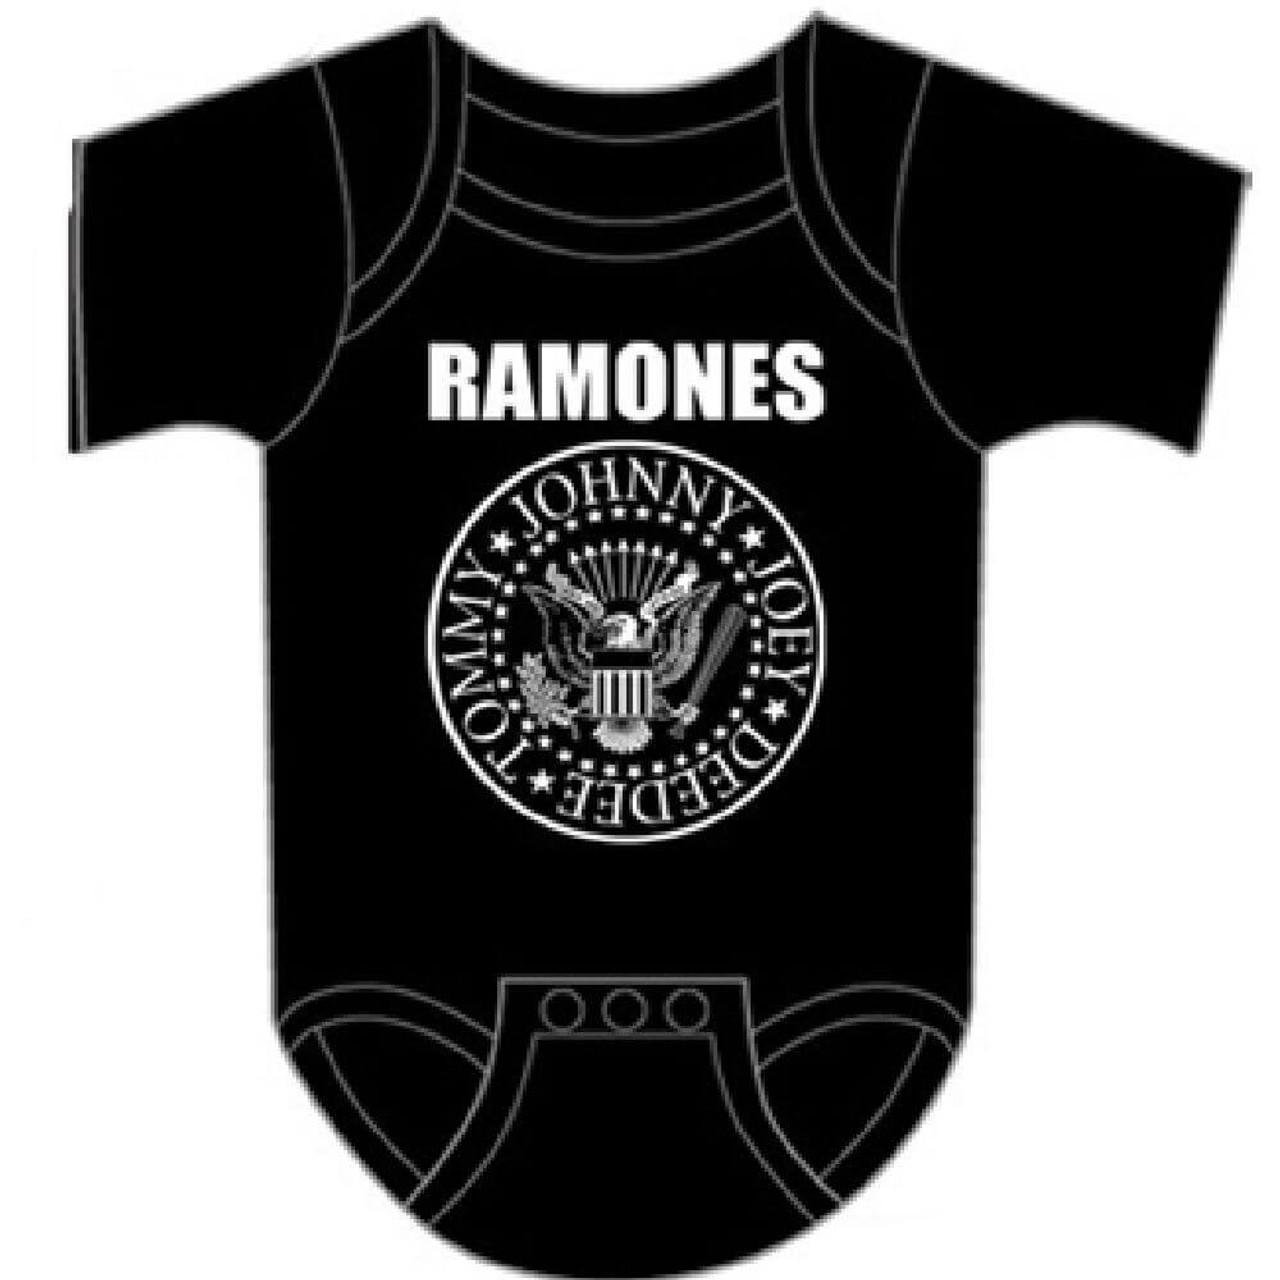 e981121d Ramones Presidential Seal Logo Baby Onesie Infant One Piece Romper Suit in  Black